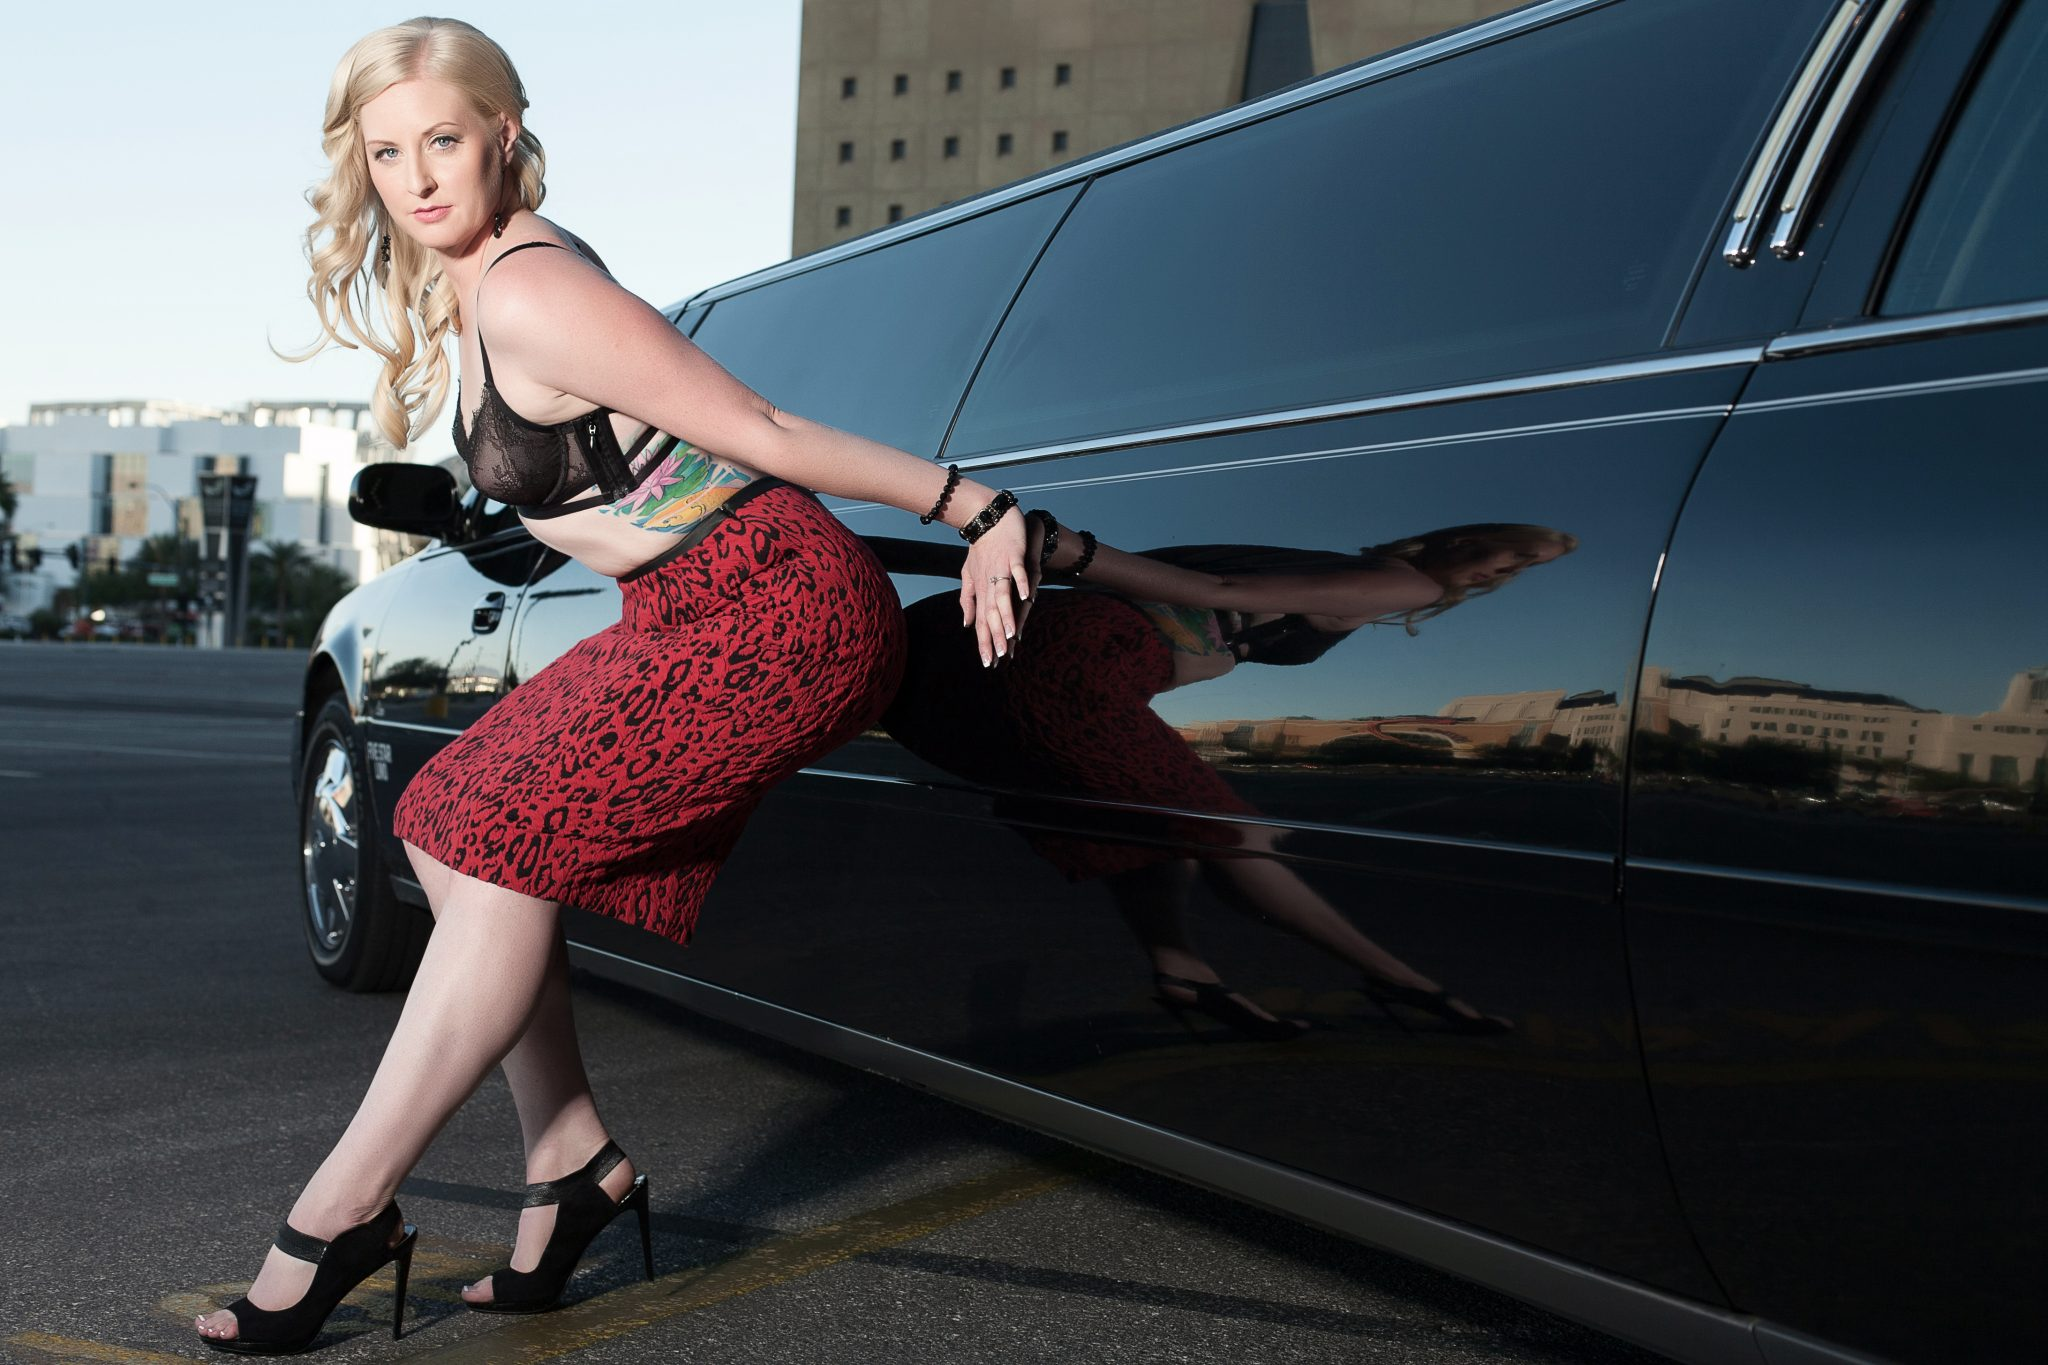 Posing in front of a limousine for boudoir photography shoot.